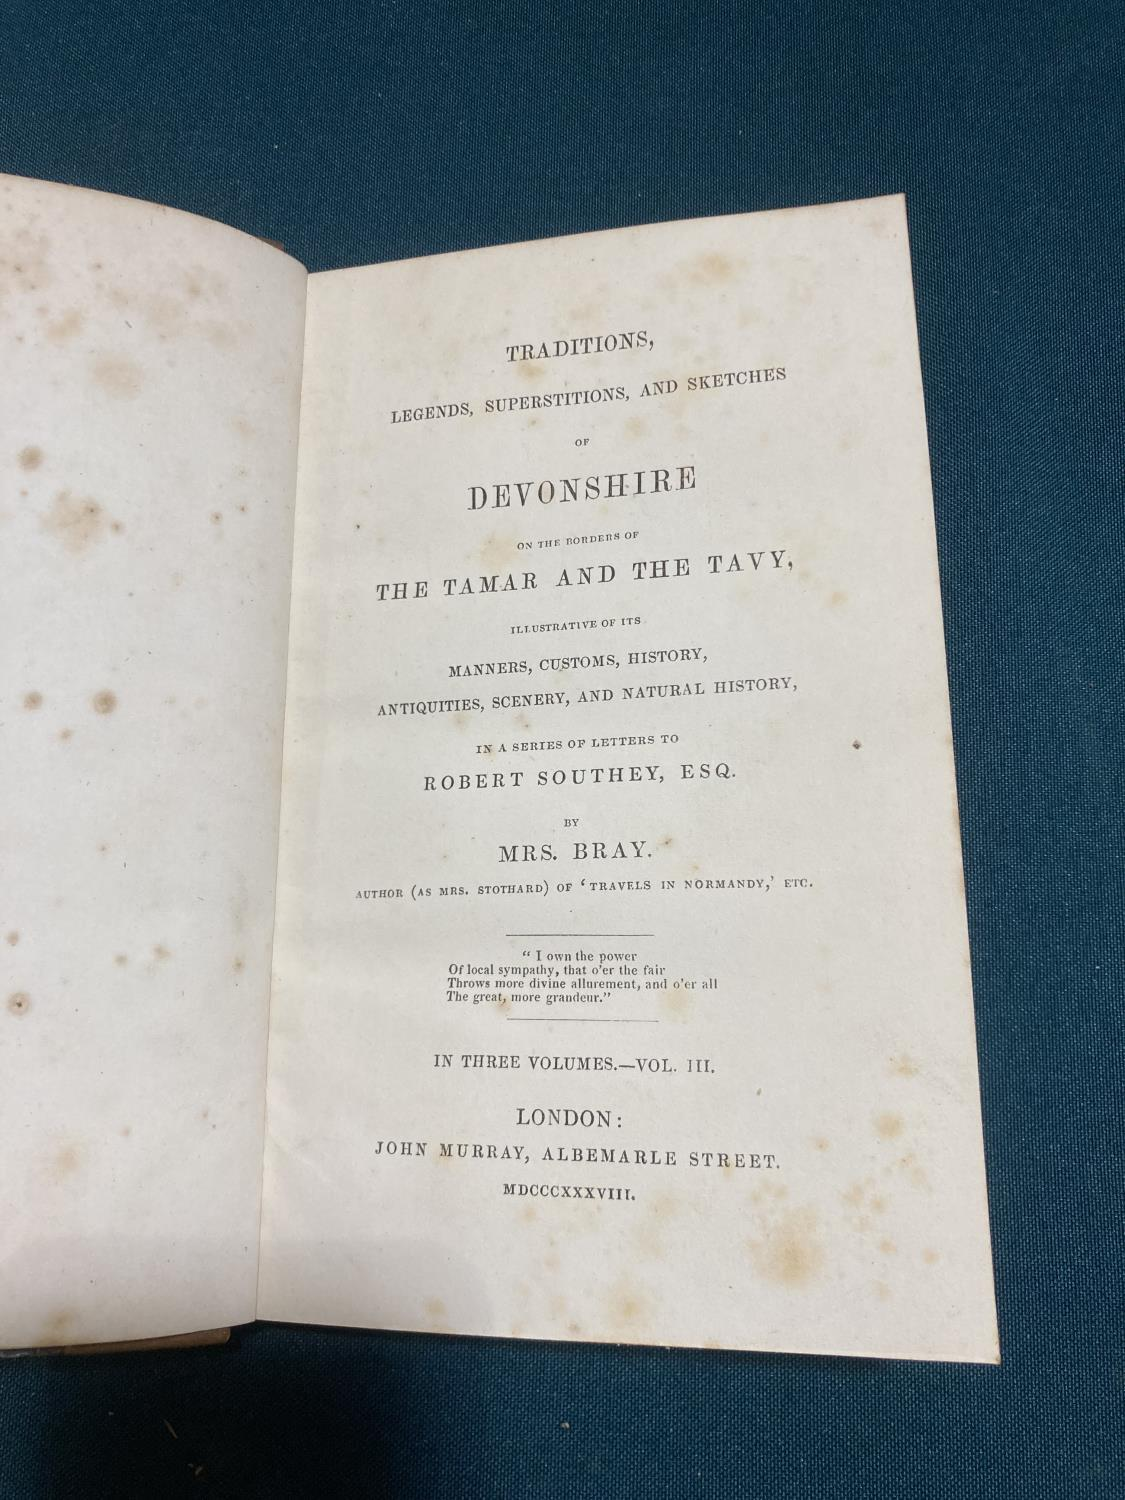 Bray, Anna Eliza Stothard. Traditions, Legends, Superstitions, and Sketches of Devonshire... in a - Image 4 of 4